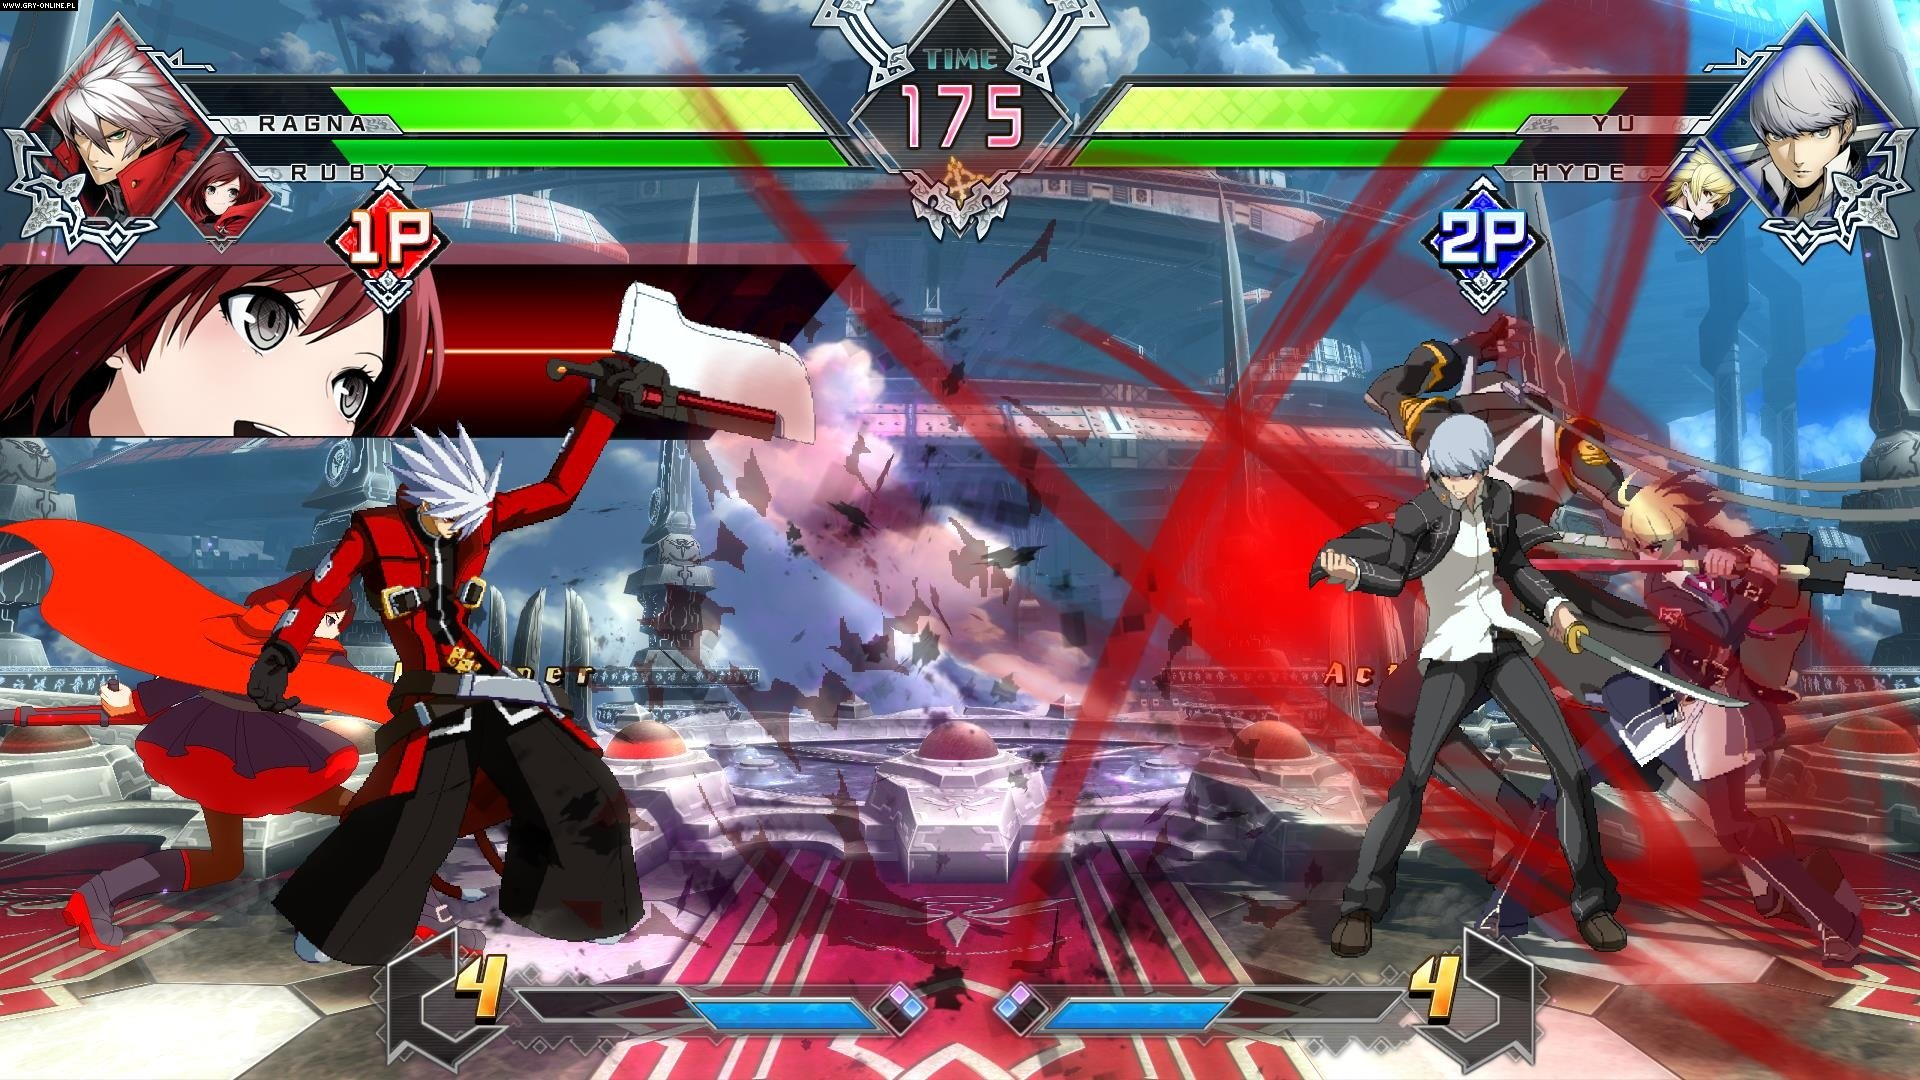 BlazBlue: Cross Tag Battle PC, PS4, Switch Gry Screen 5/109, Arc System Works